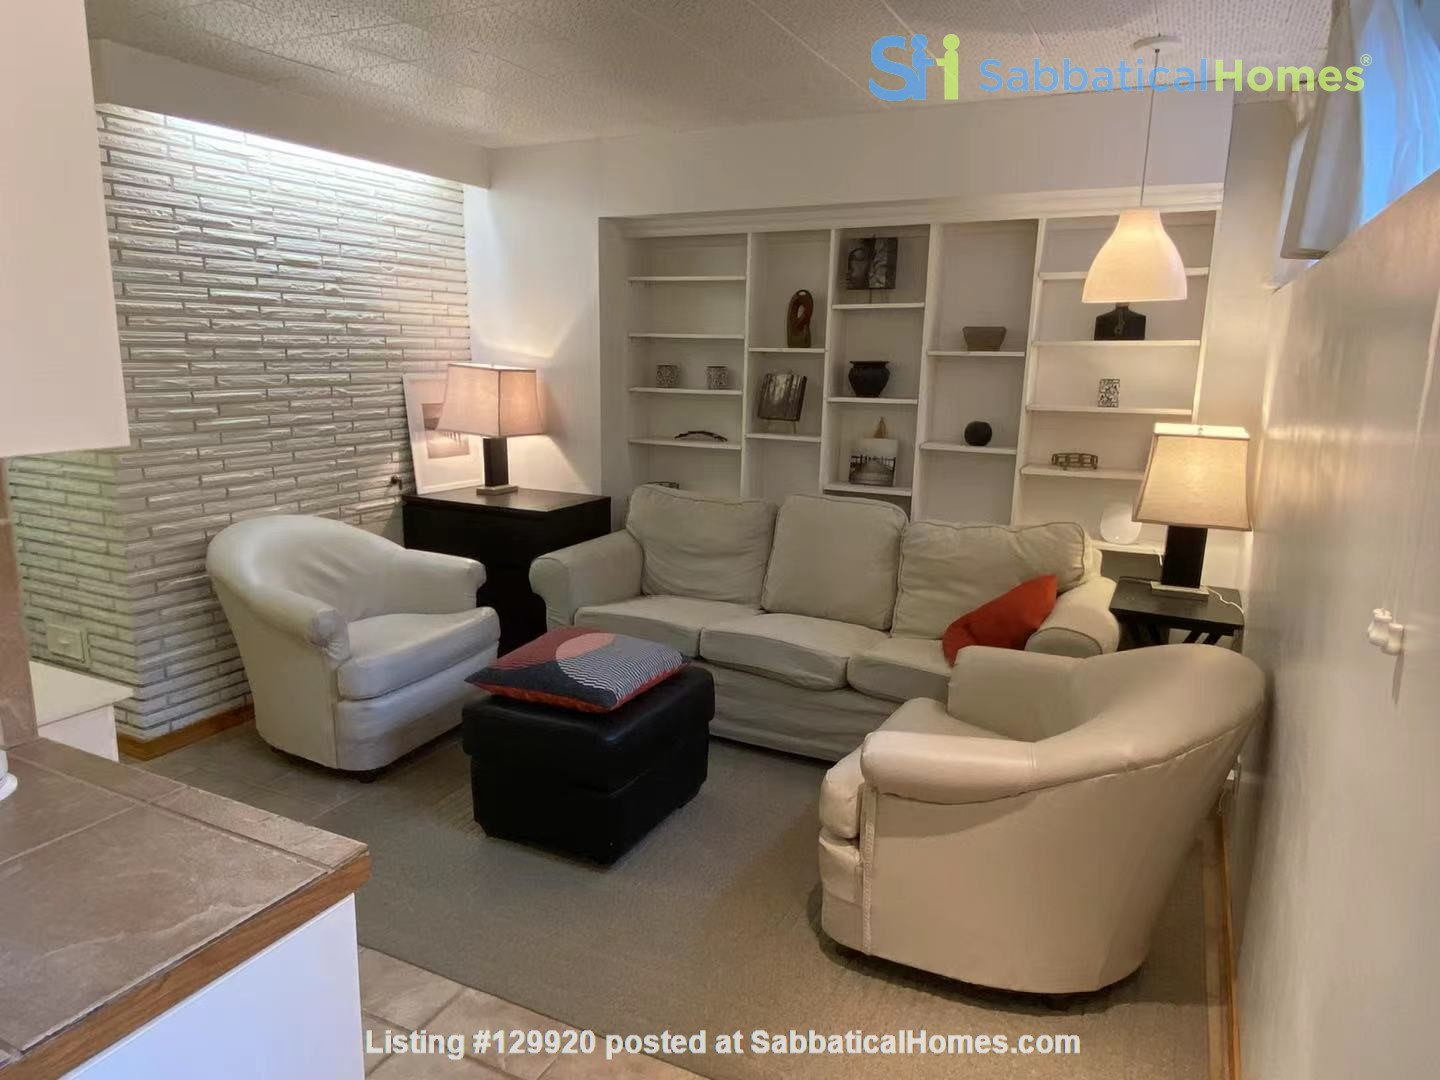 Walkout basement suite on UoA campus for short term daily rental ($50/day) Home Rental in Edmonton, Alberta, Canada 3